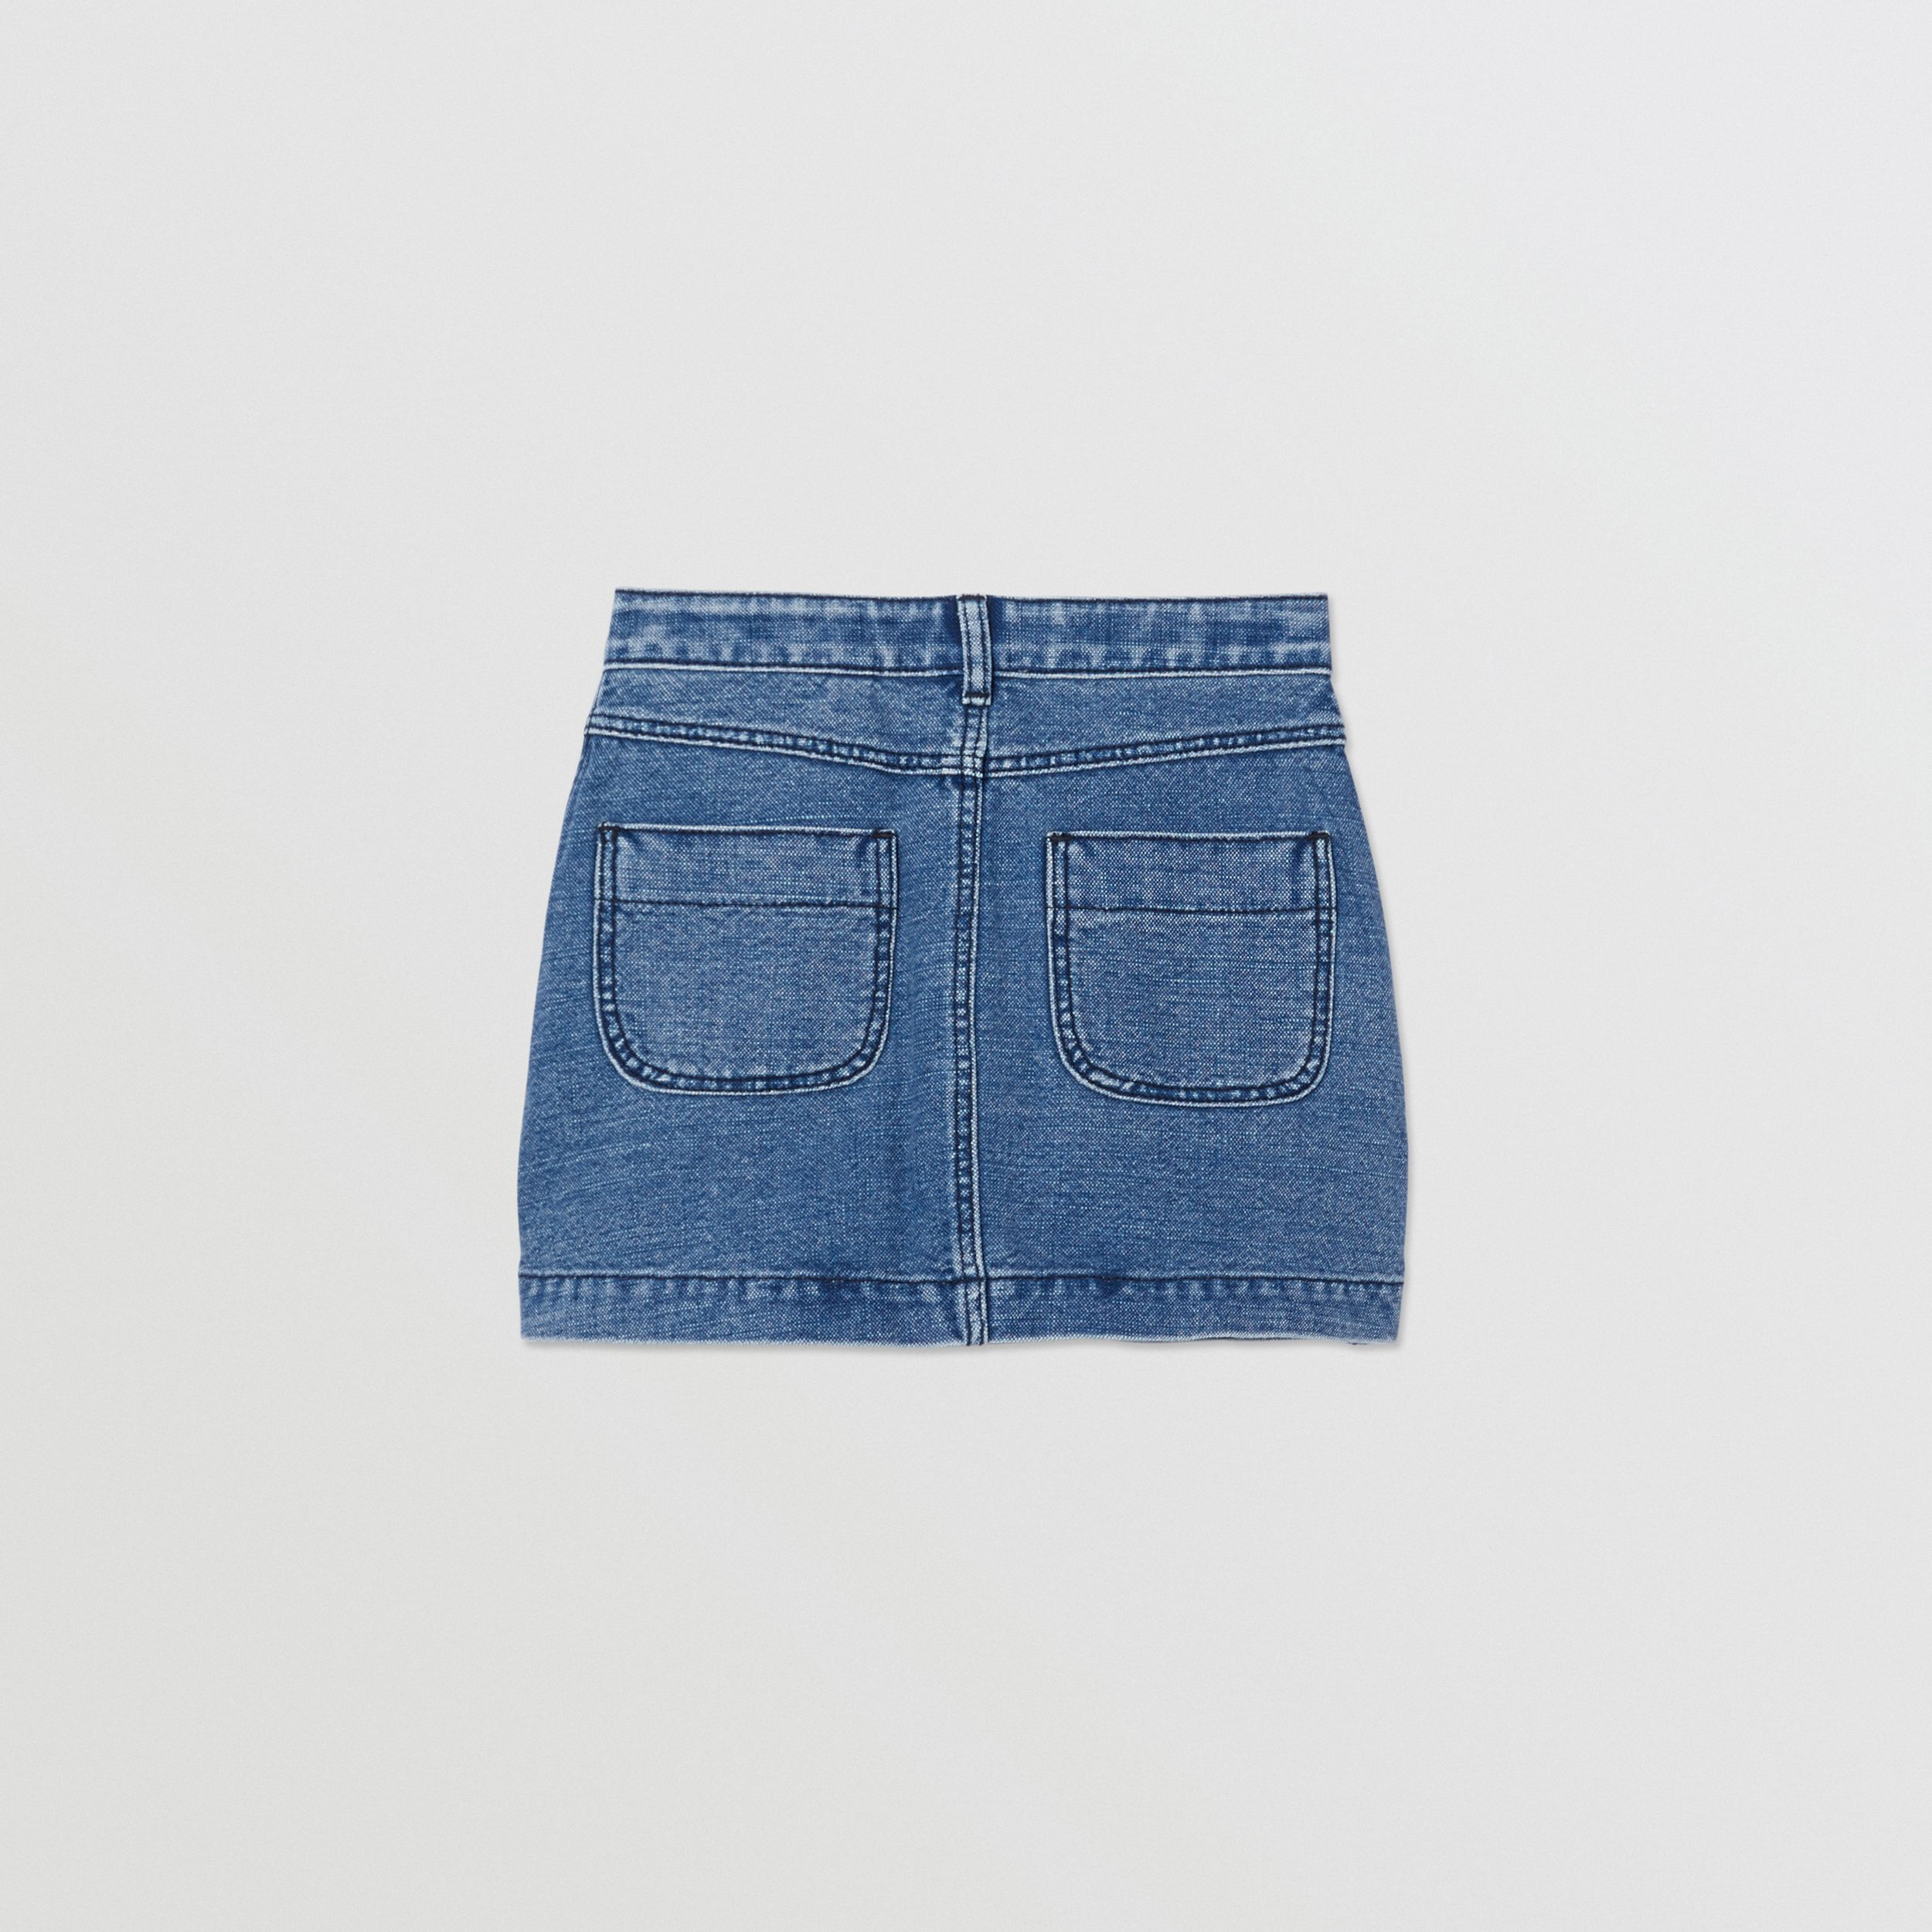 Logo Print Japanese Denim Skirt in Indigo | Burberry - 4